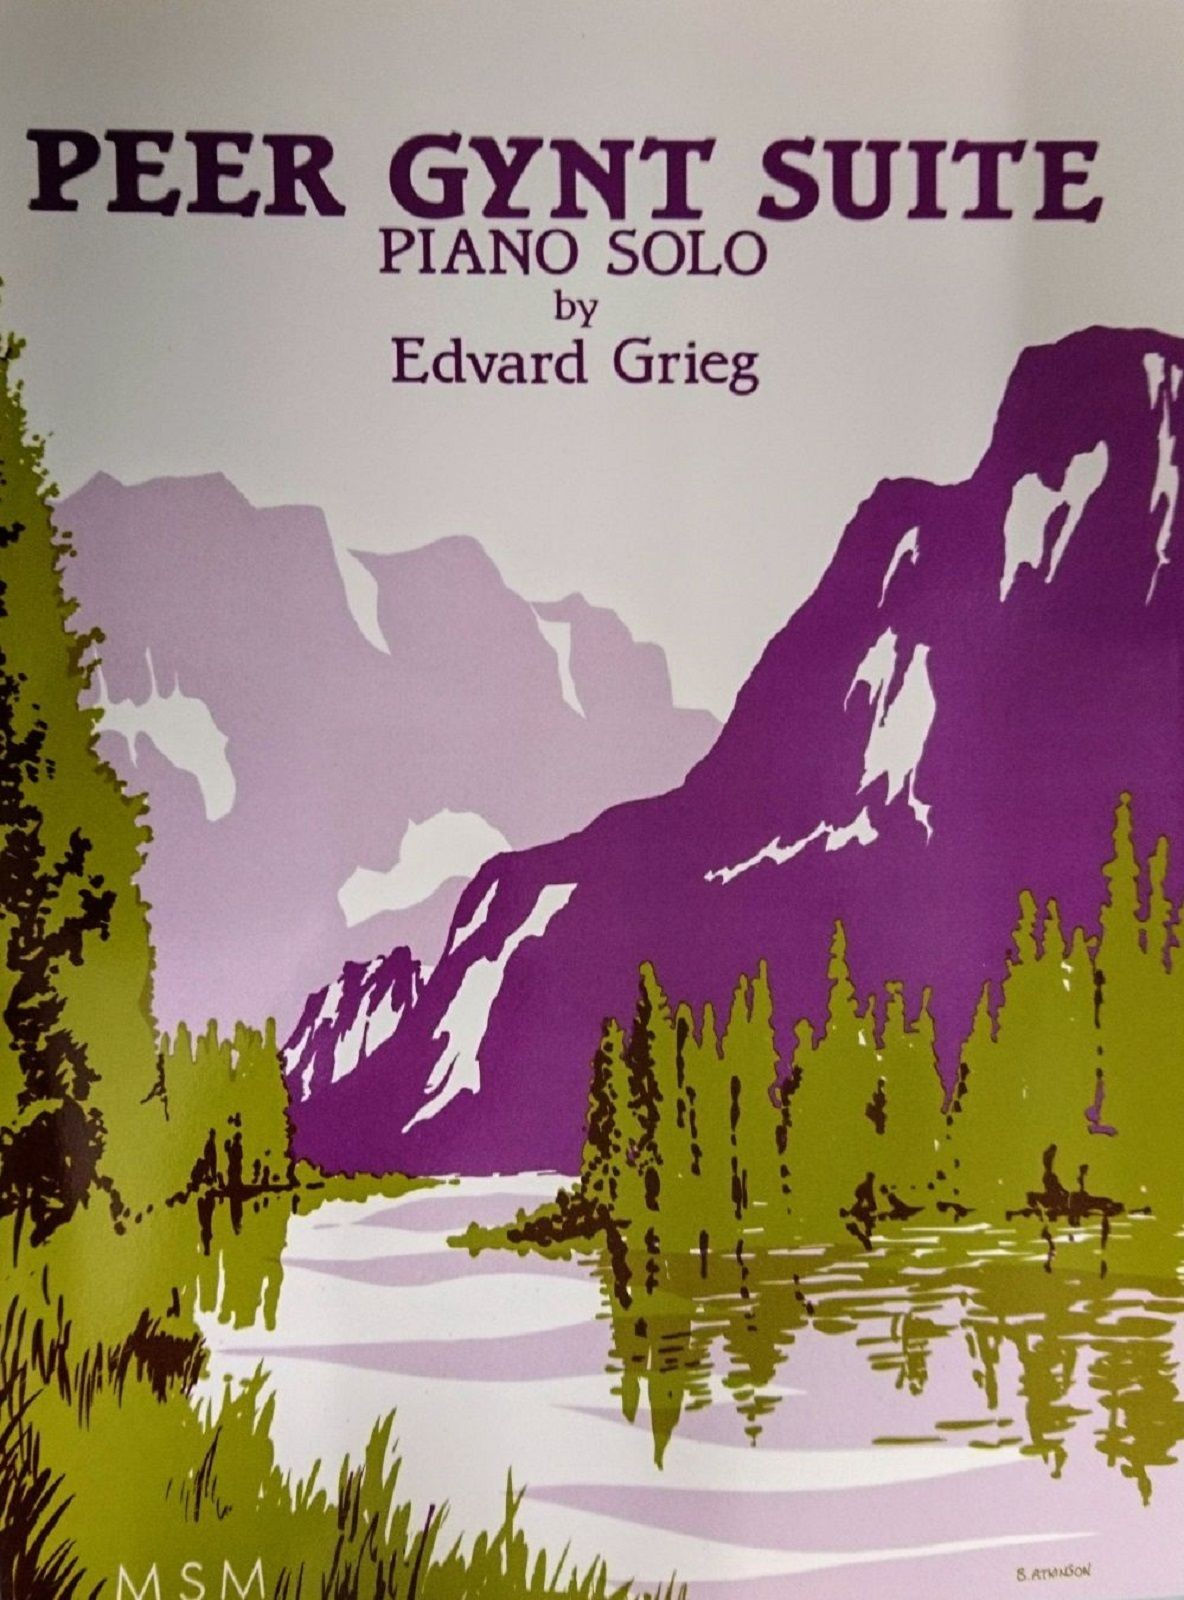 Peer Gynt Suite Piano Solo Edvard Grieg Sheet Music Book S134